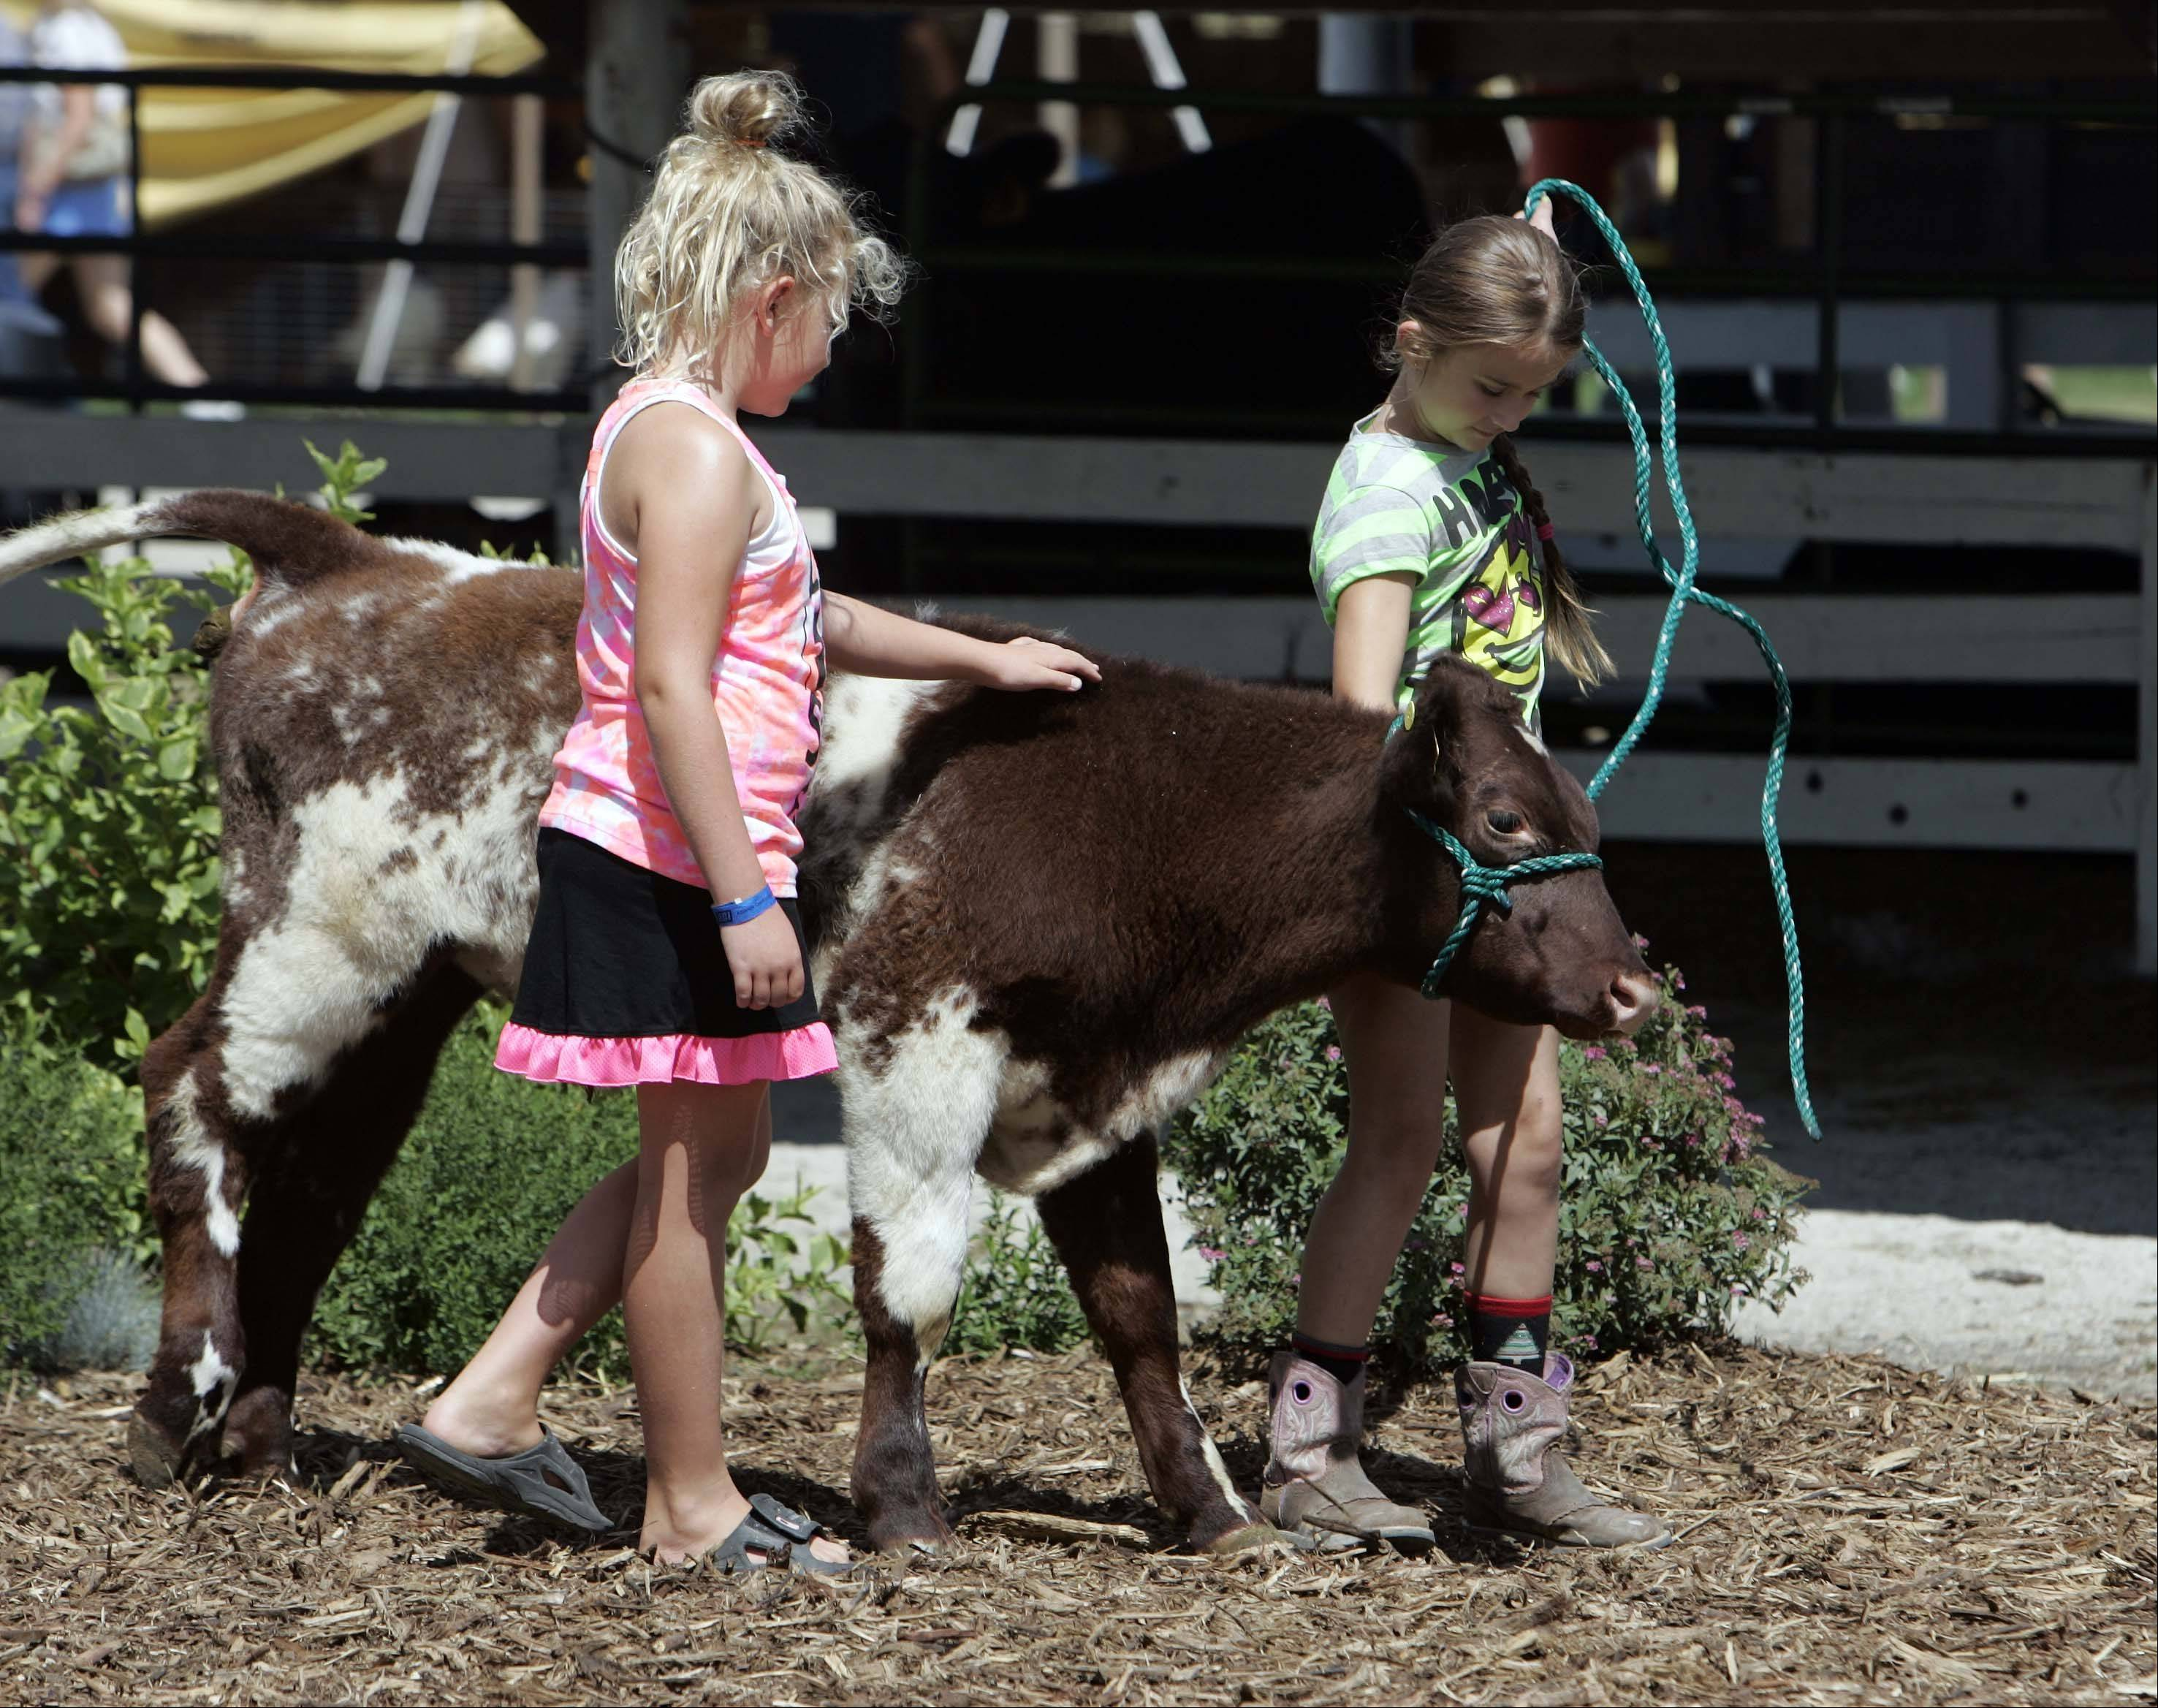 Rachael Kay Freitag, of Hebron left, and Danielle Menge of Harvard, both seven, try to control RJ, a bull calf, while they have their picture taken at the McHenry County Fair Sunday August 5, 2012 in Woodstock.